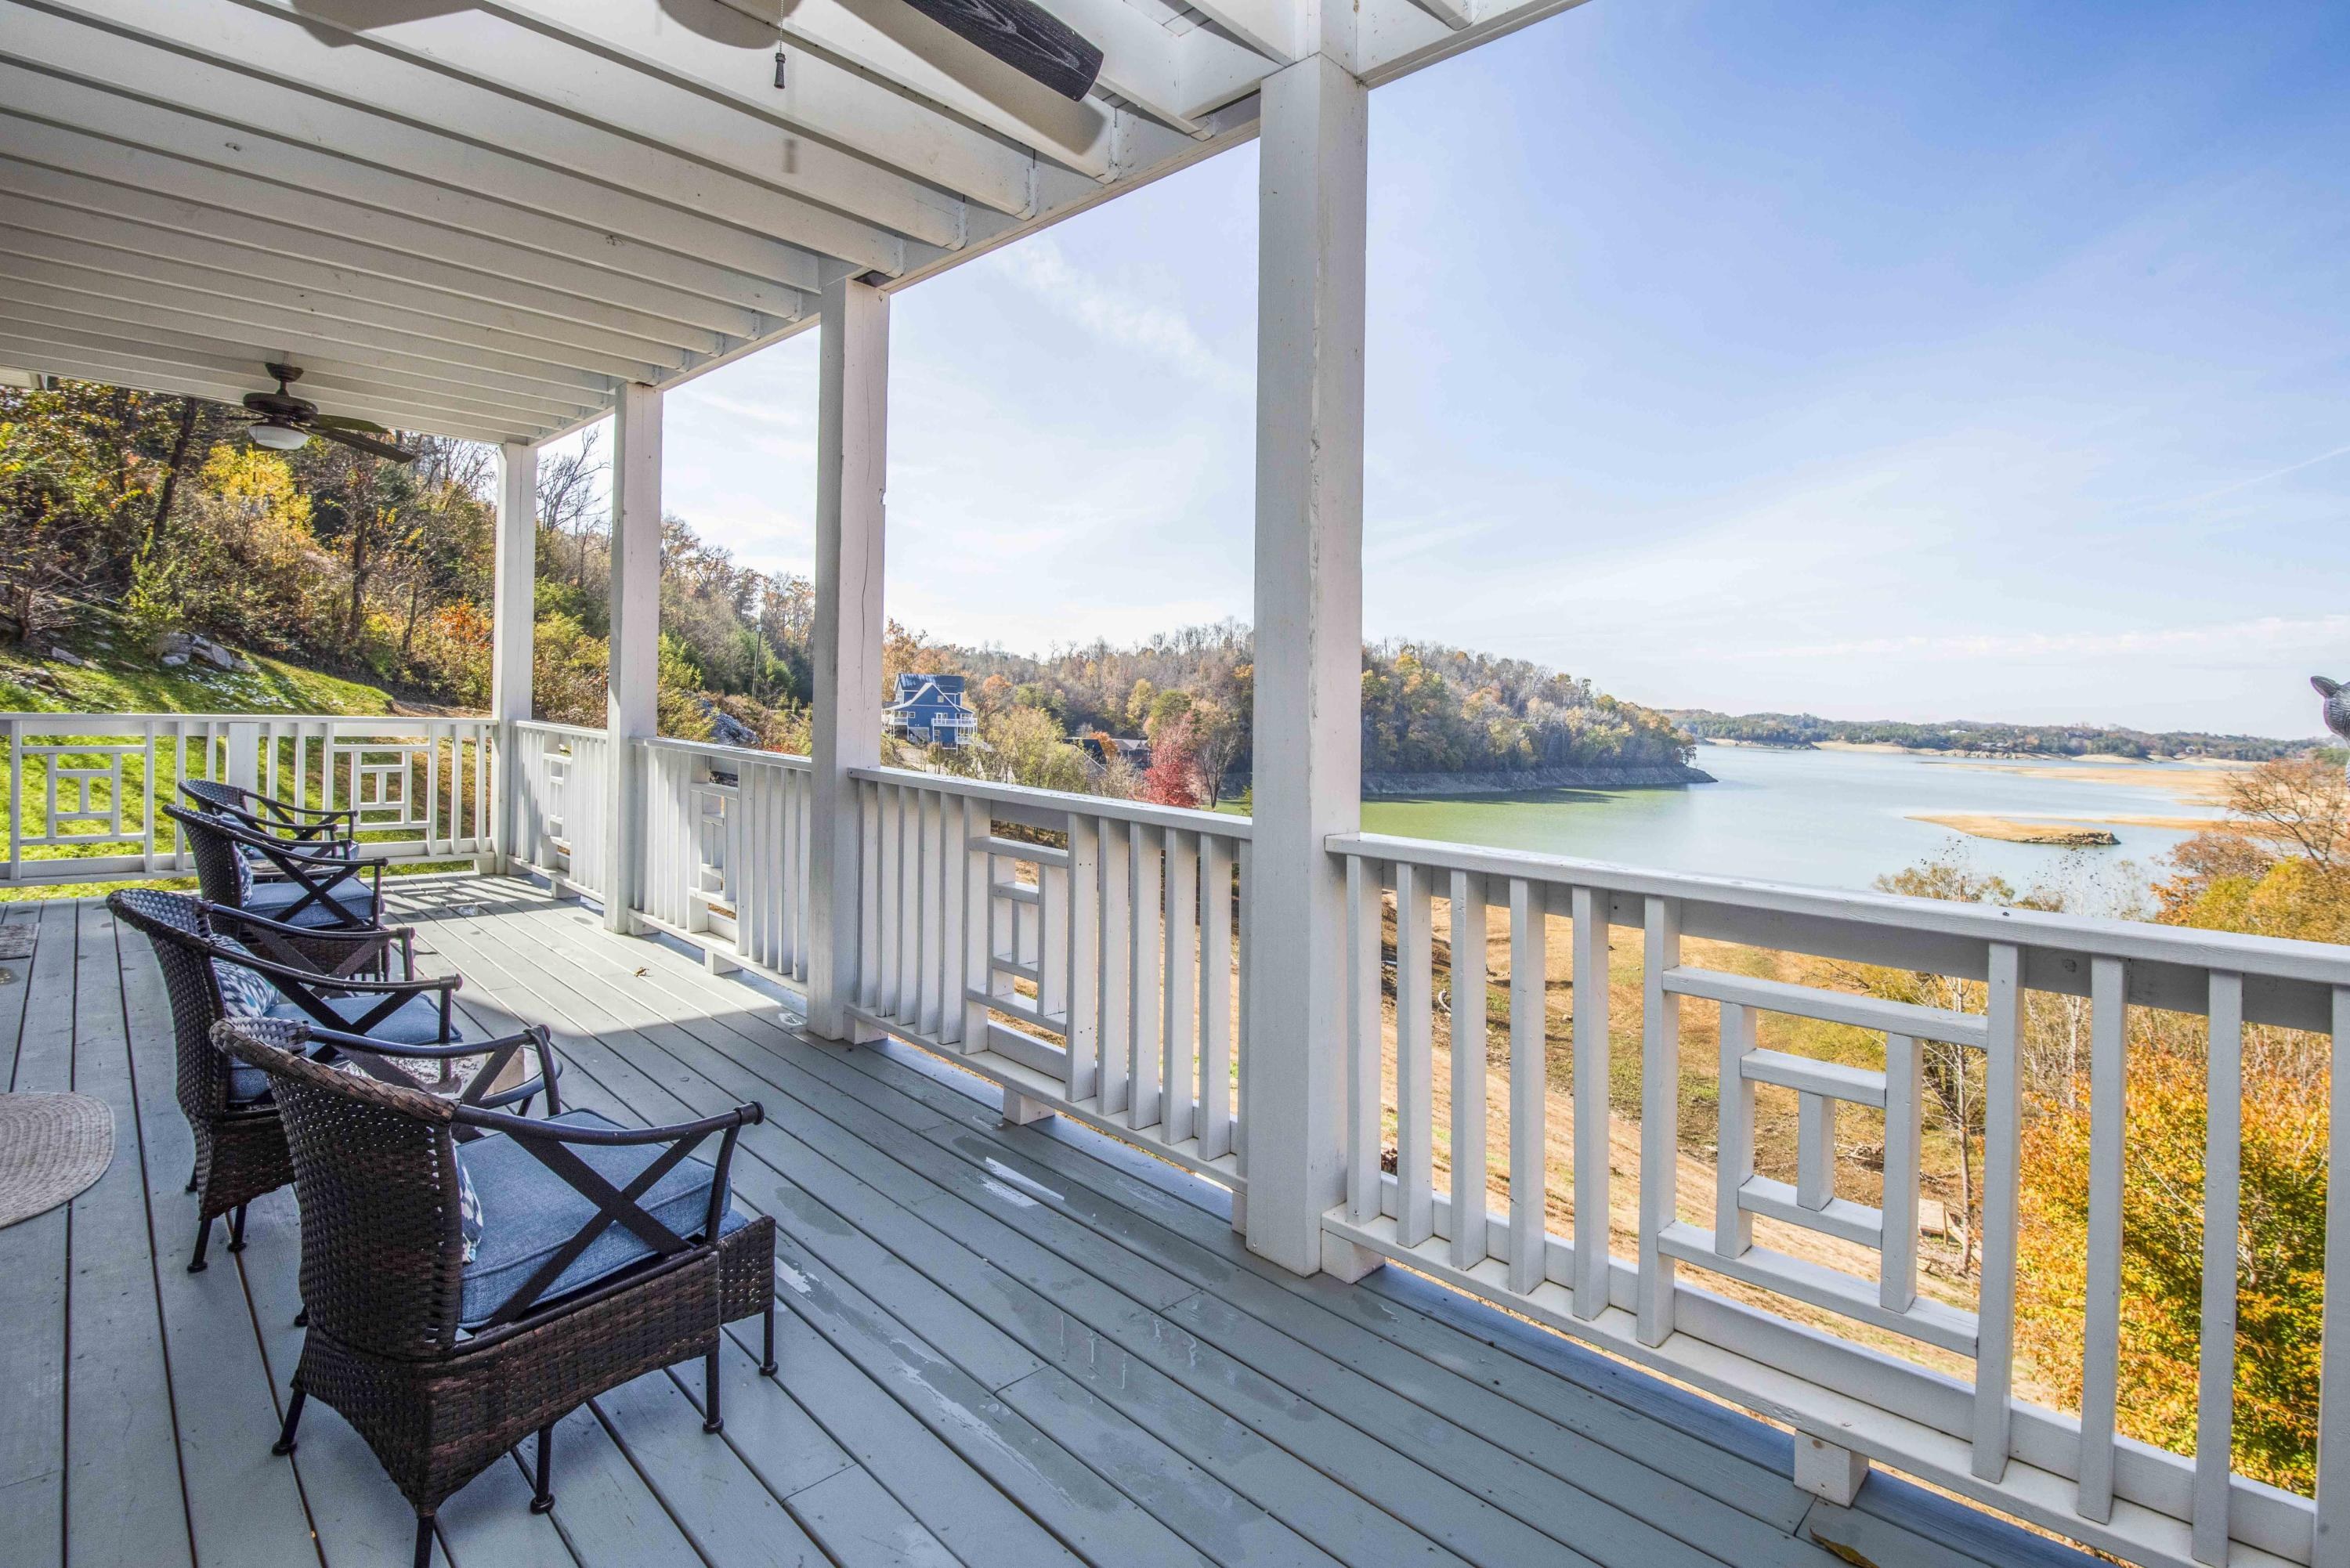 2410 Waterfront Way Way, Sevierville, Tennessee 37876, 3 Bedrooms Bedrooms, ,3 BathroomsBathrooms,Single Family,For Sale,Waterfront Way,1100300